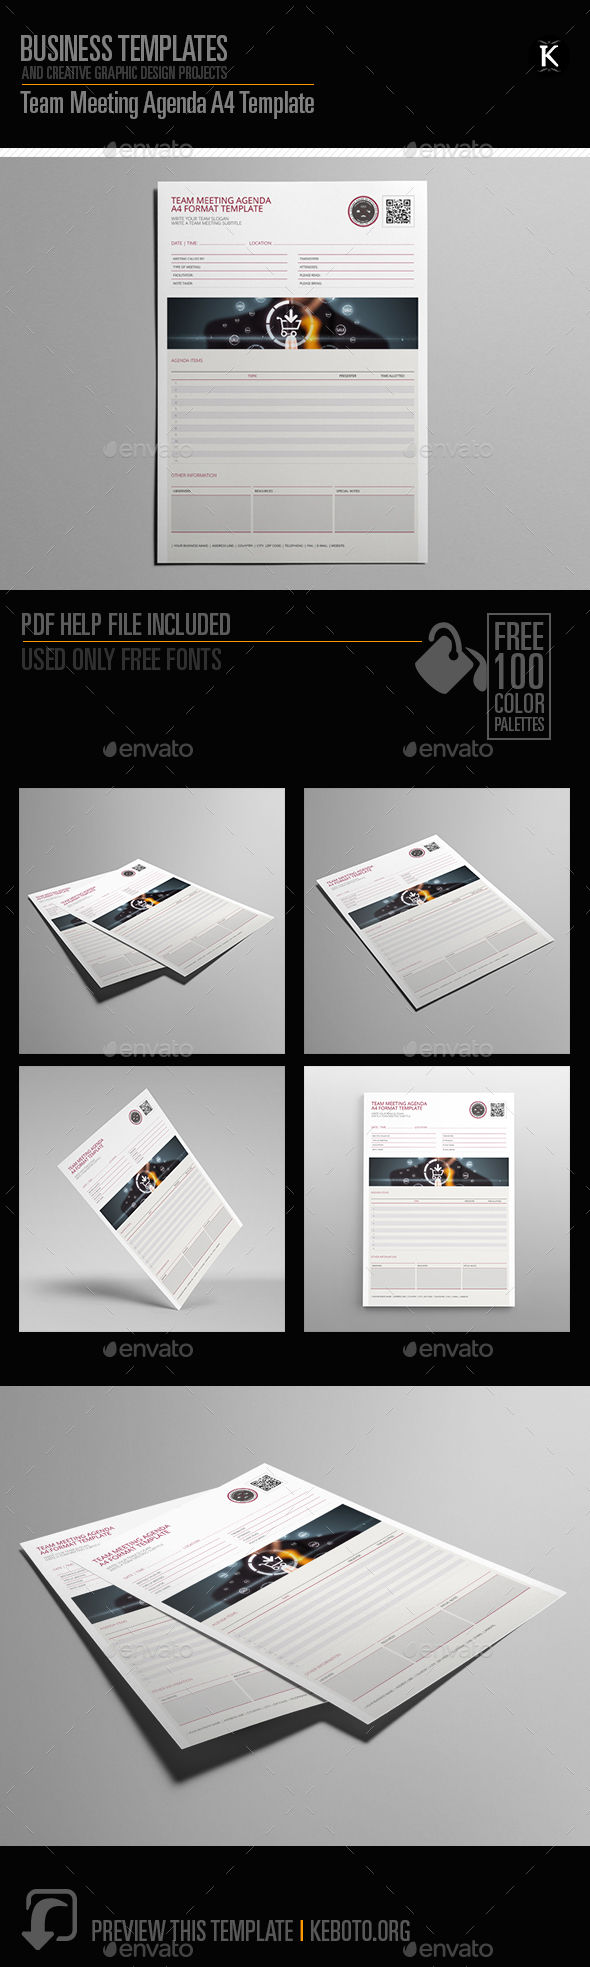 Team Meeting Agenda A4 Template - Miscellaneous Print Templates